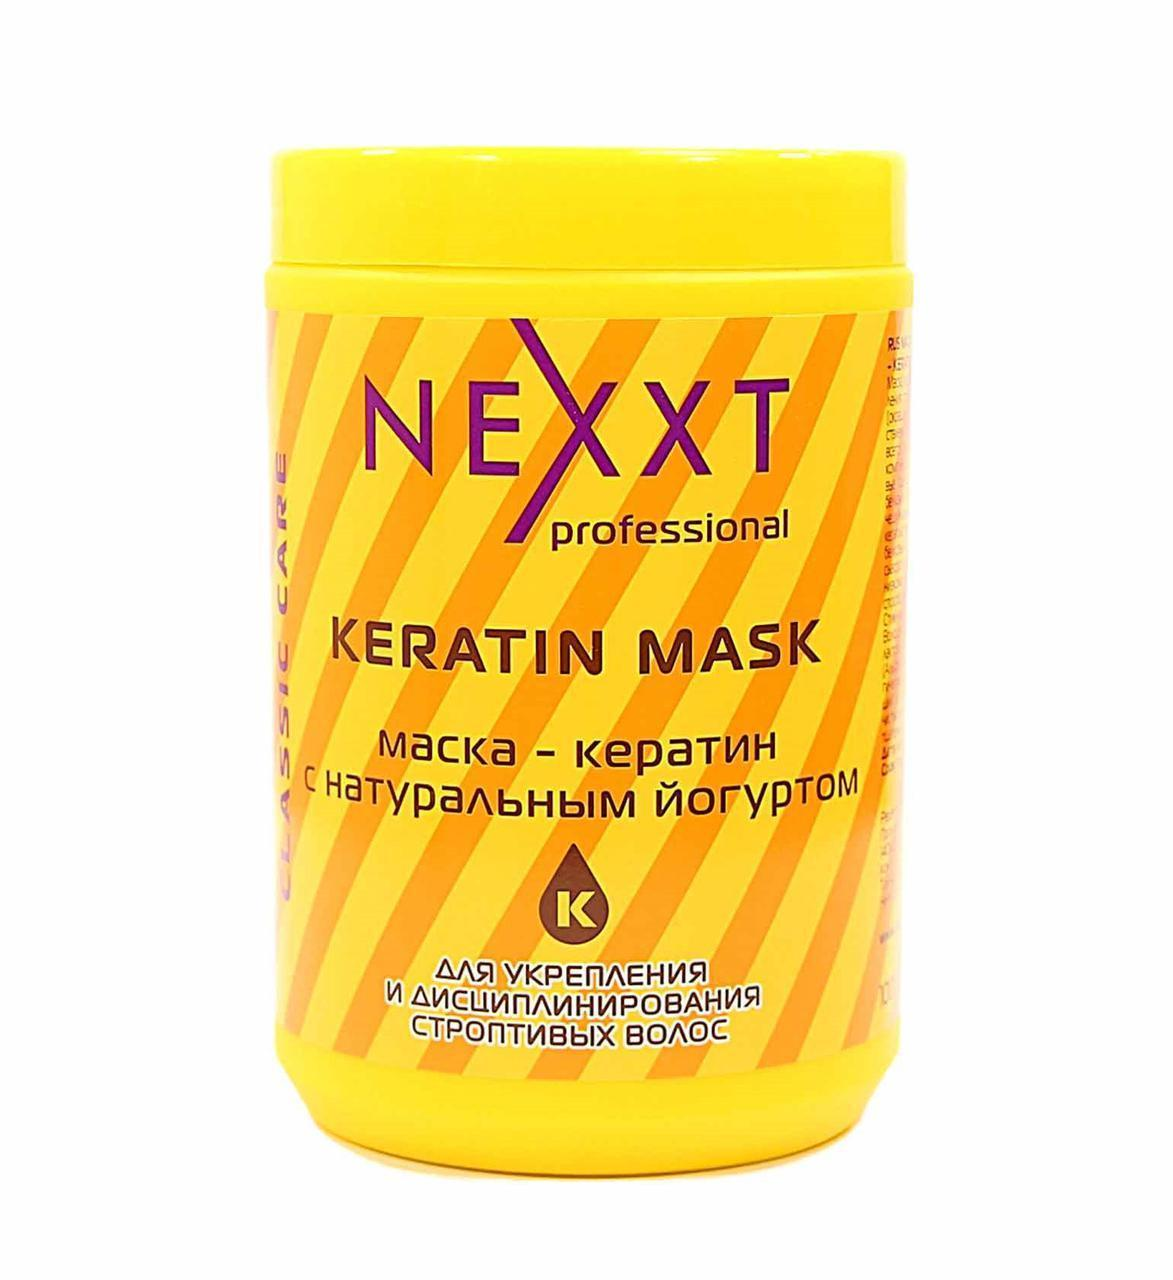 Маска-кератин с натуральным йогуртом Nexxt Professional Keratin Mask 1000ml